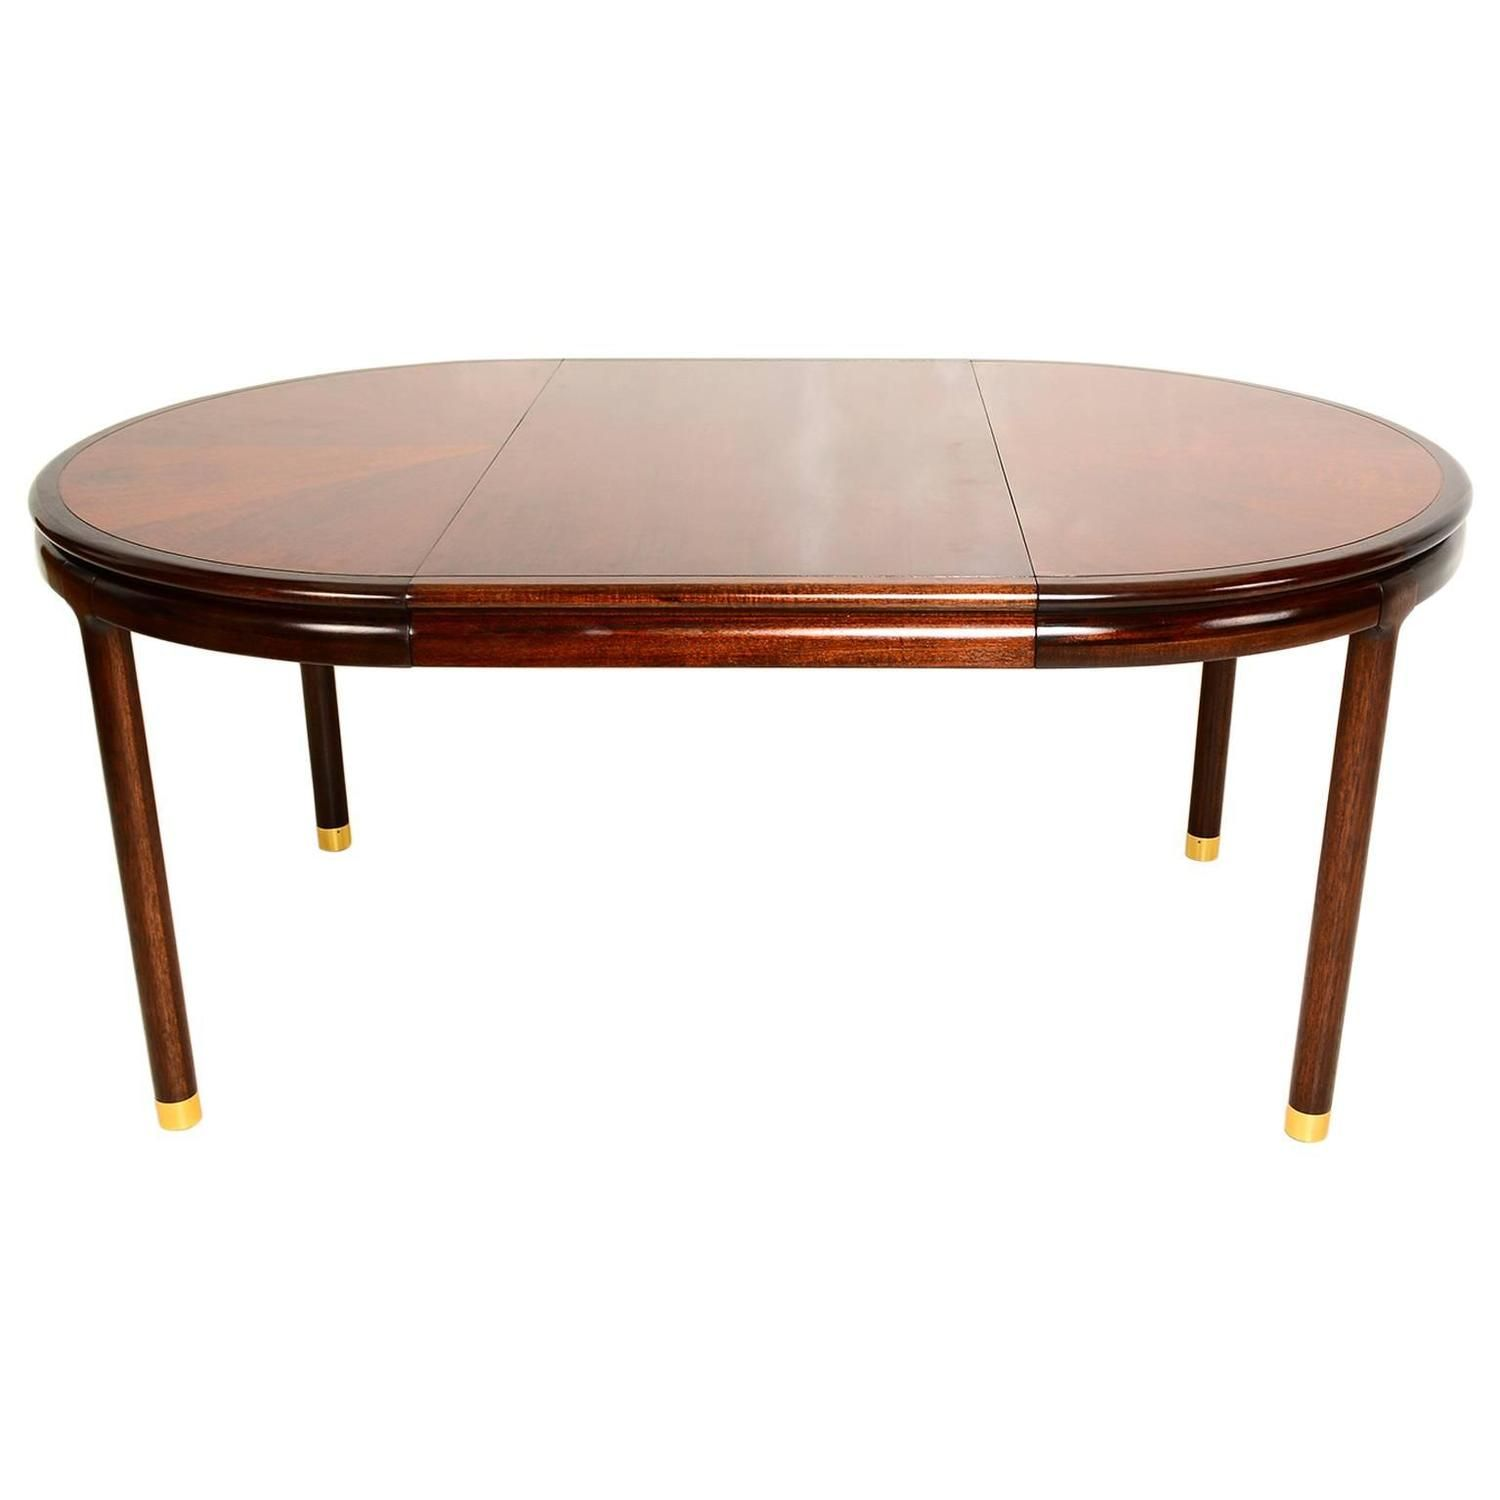 Walnut Oval Dining Table From A Unique Collection Of Antique And